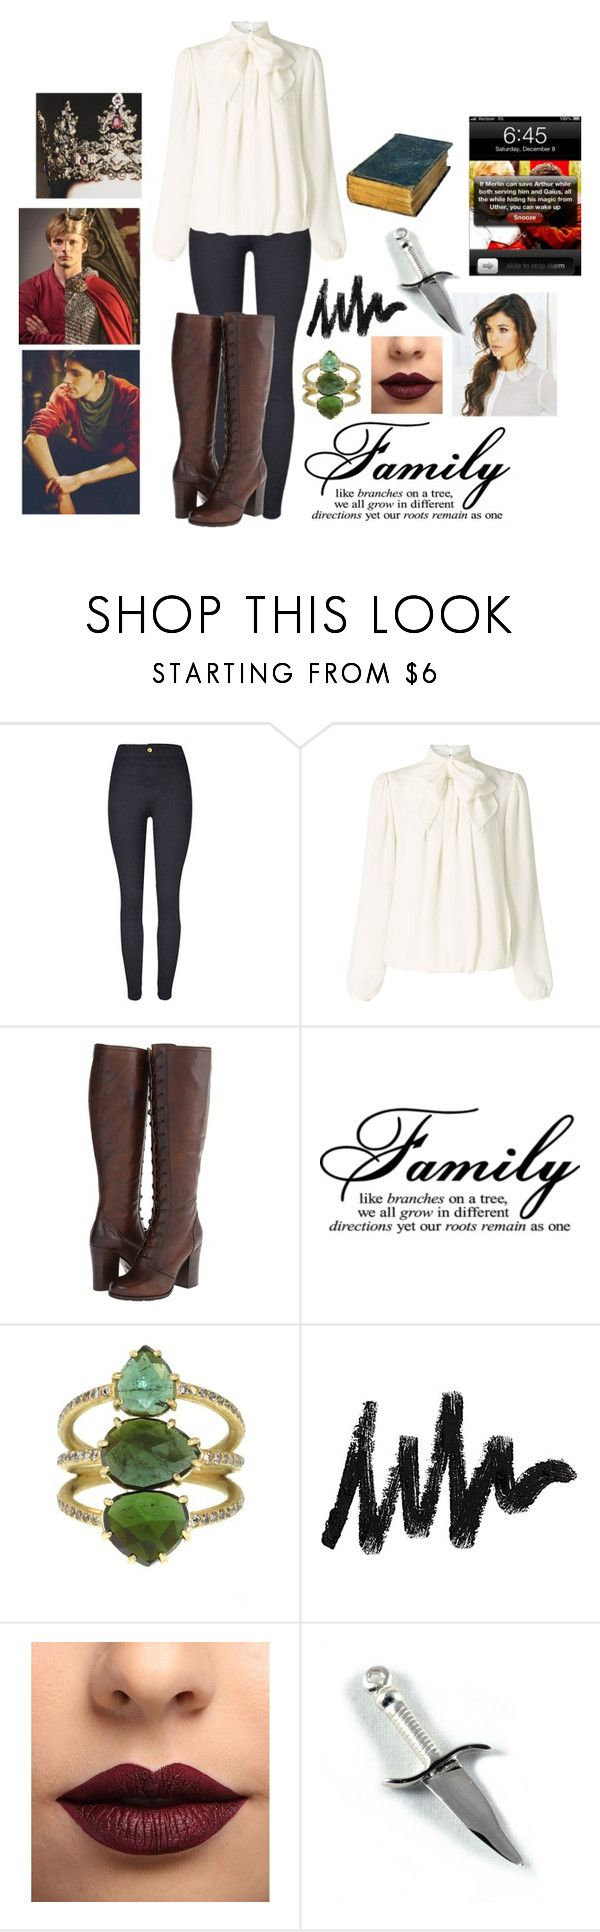 """""""Jessica Pendragon// Riding with Merlin"""" by jessicalittlestar ❤ liked on Polyvore featuring Somerset by Alice Temperley, Frye, LASplash and Arthur King"""